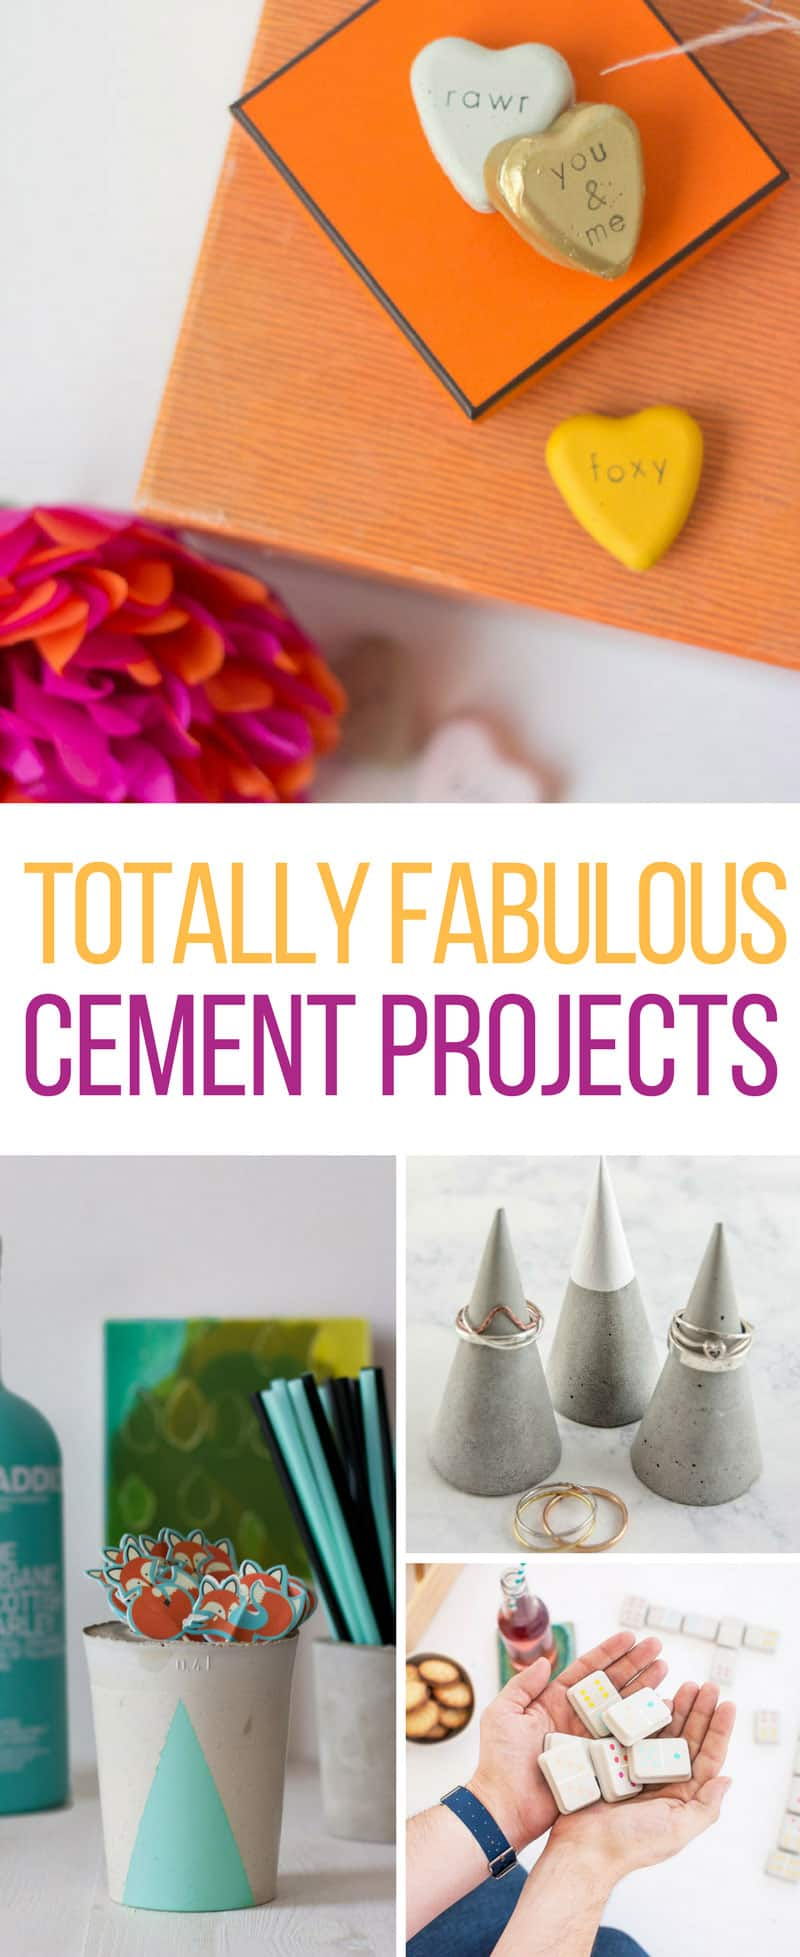 Loving these DIY concrete projects - Thanks for sharing!